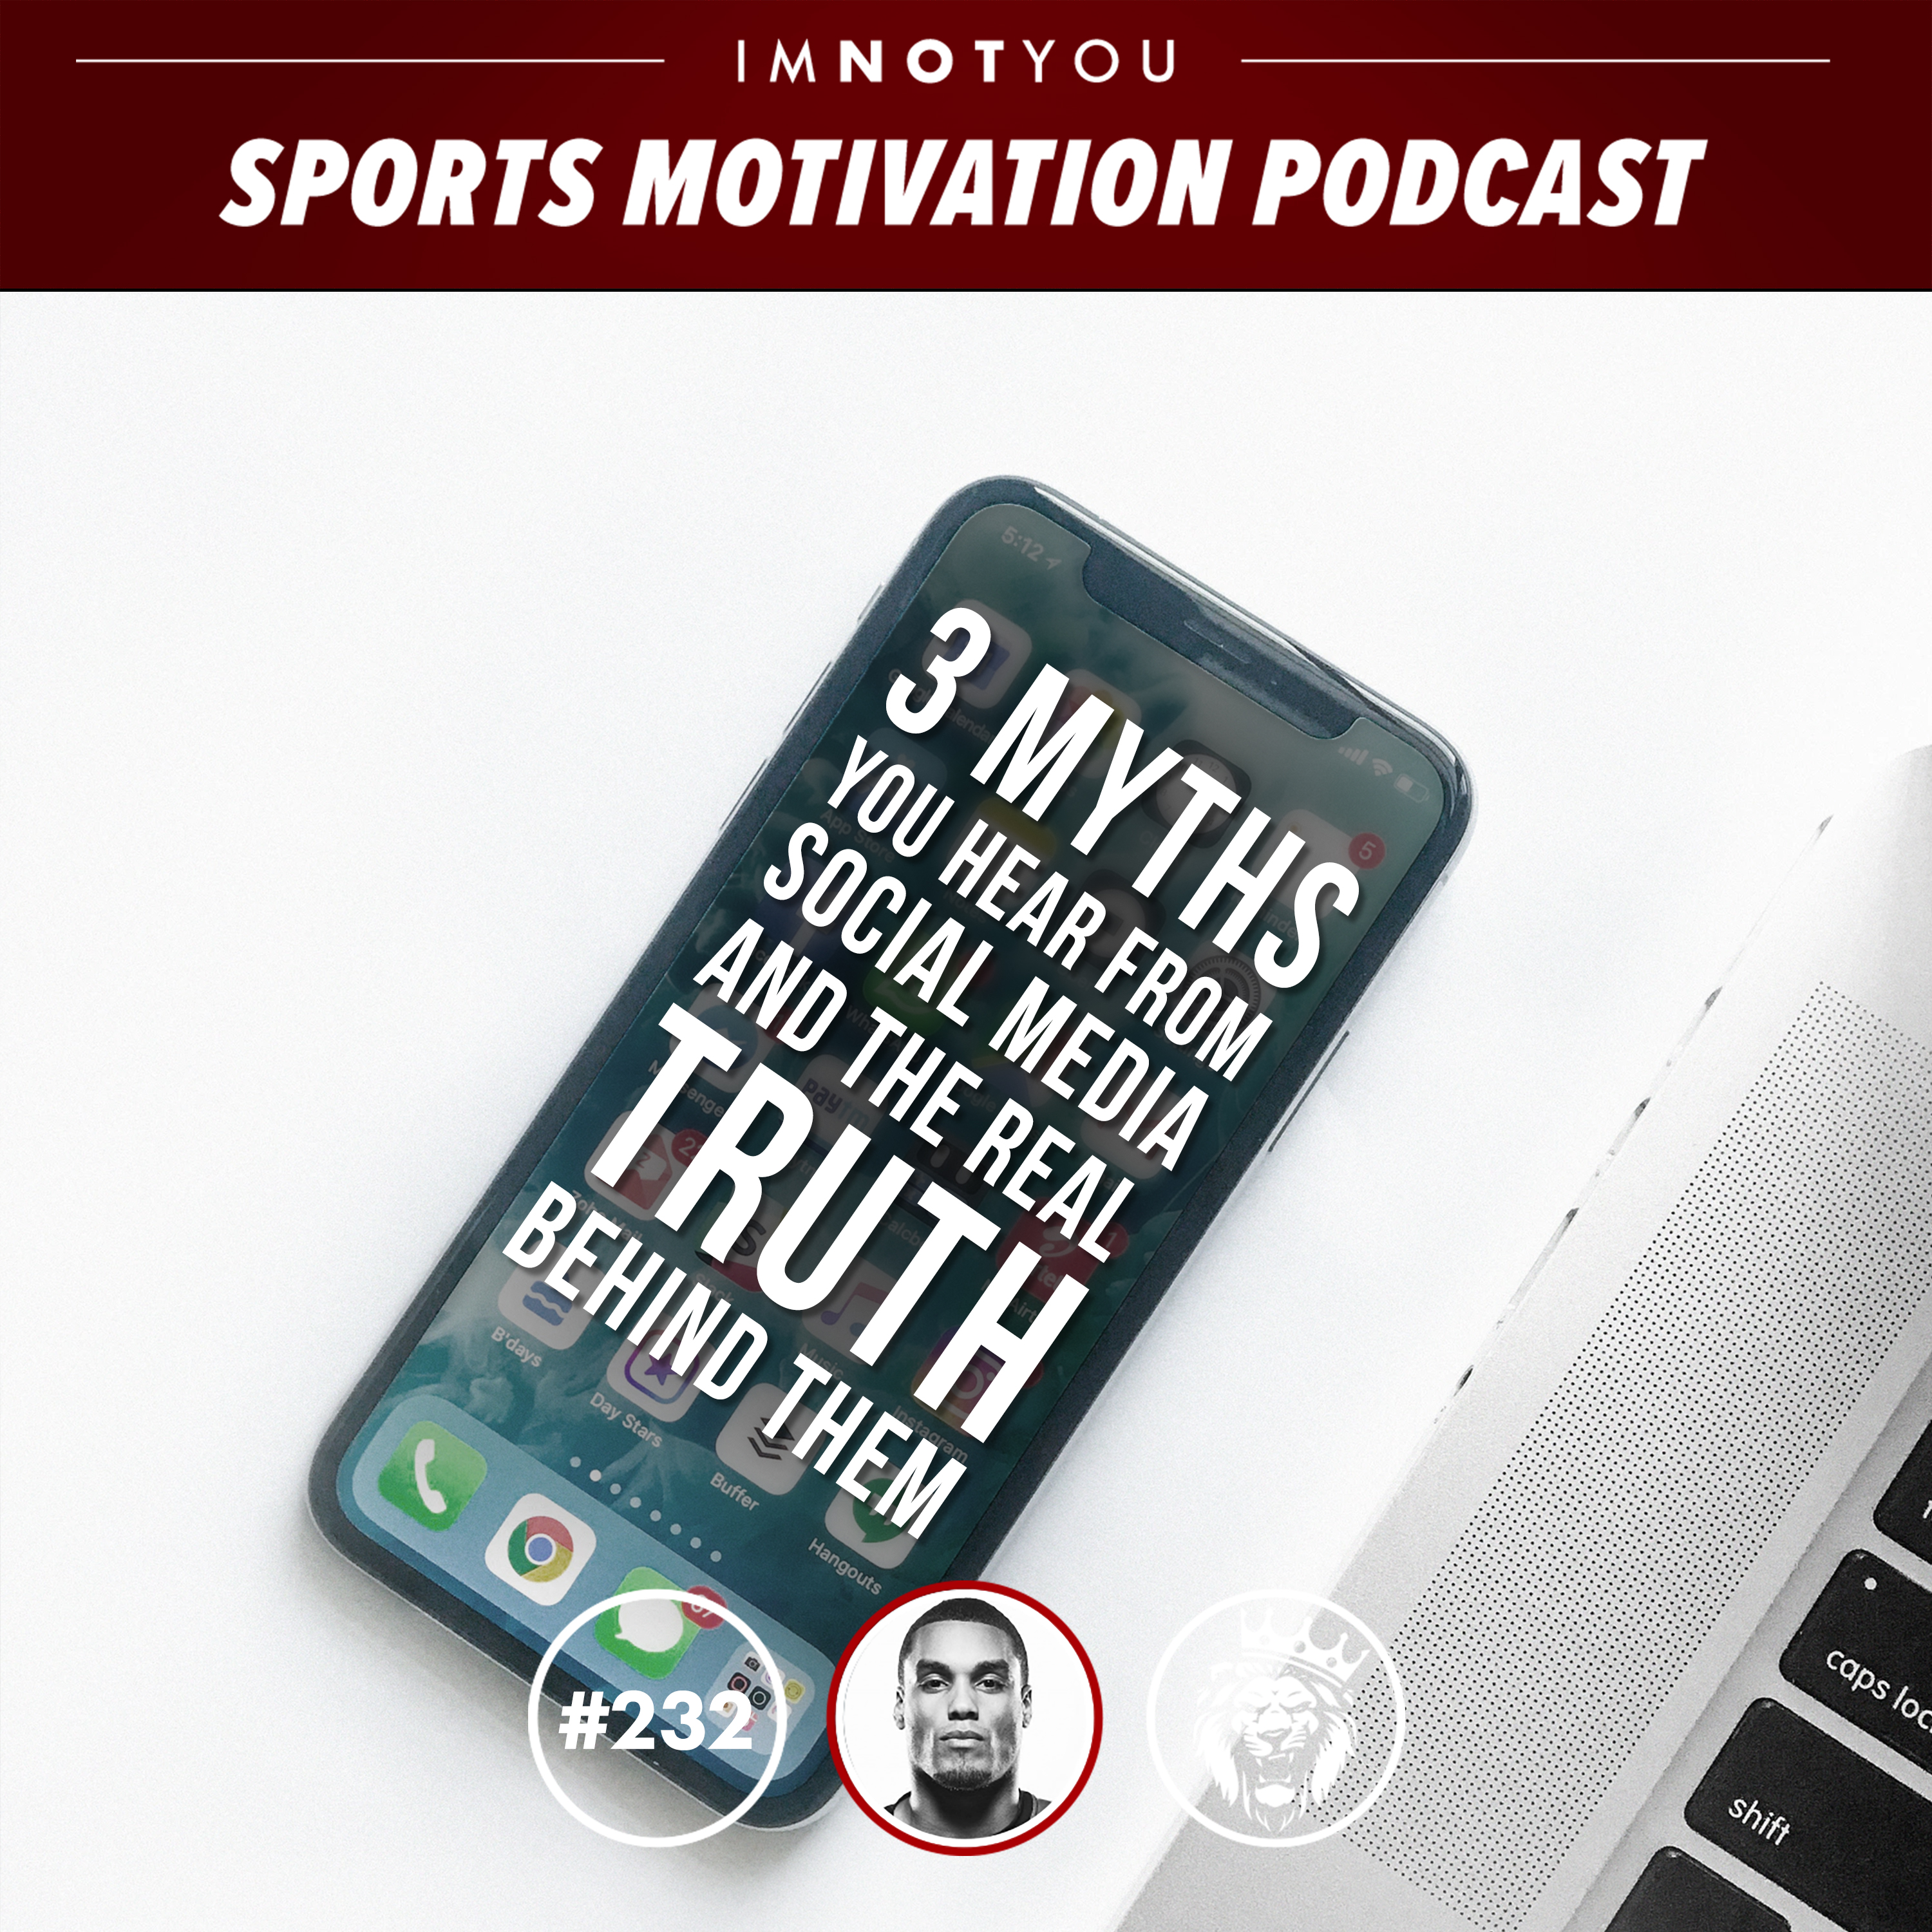 232: 3 Myths you hear from social media and the real truth behind them